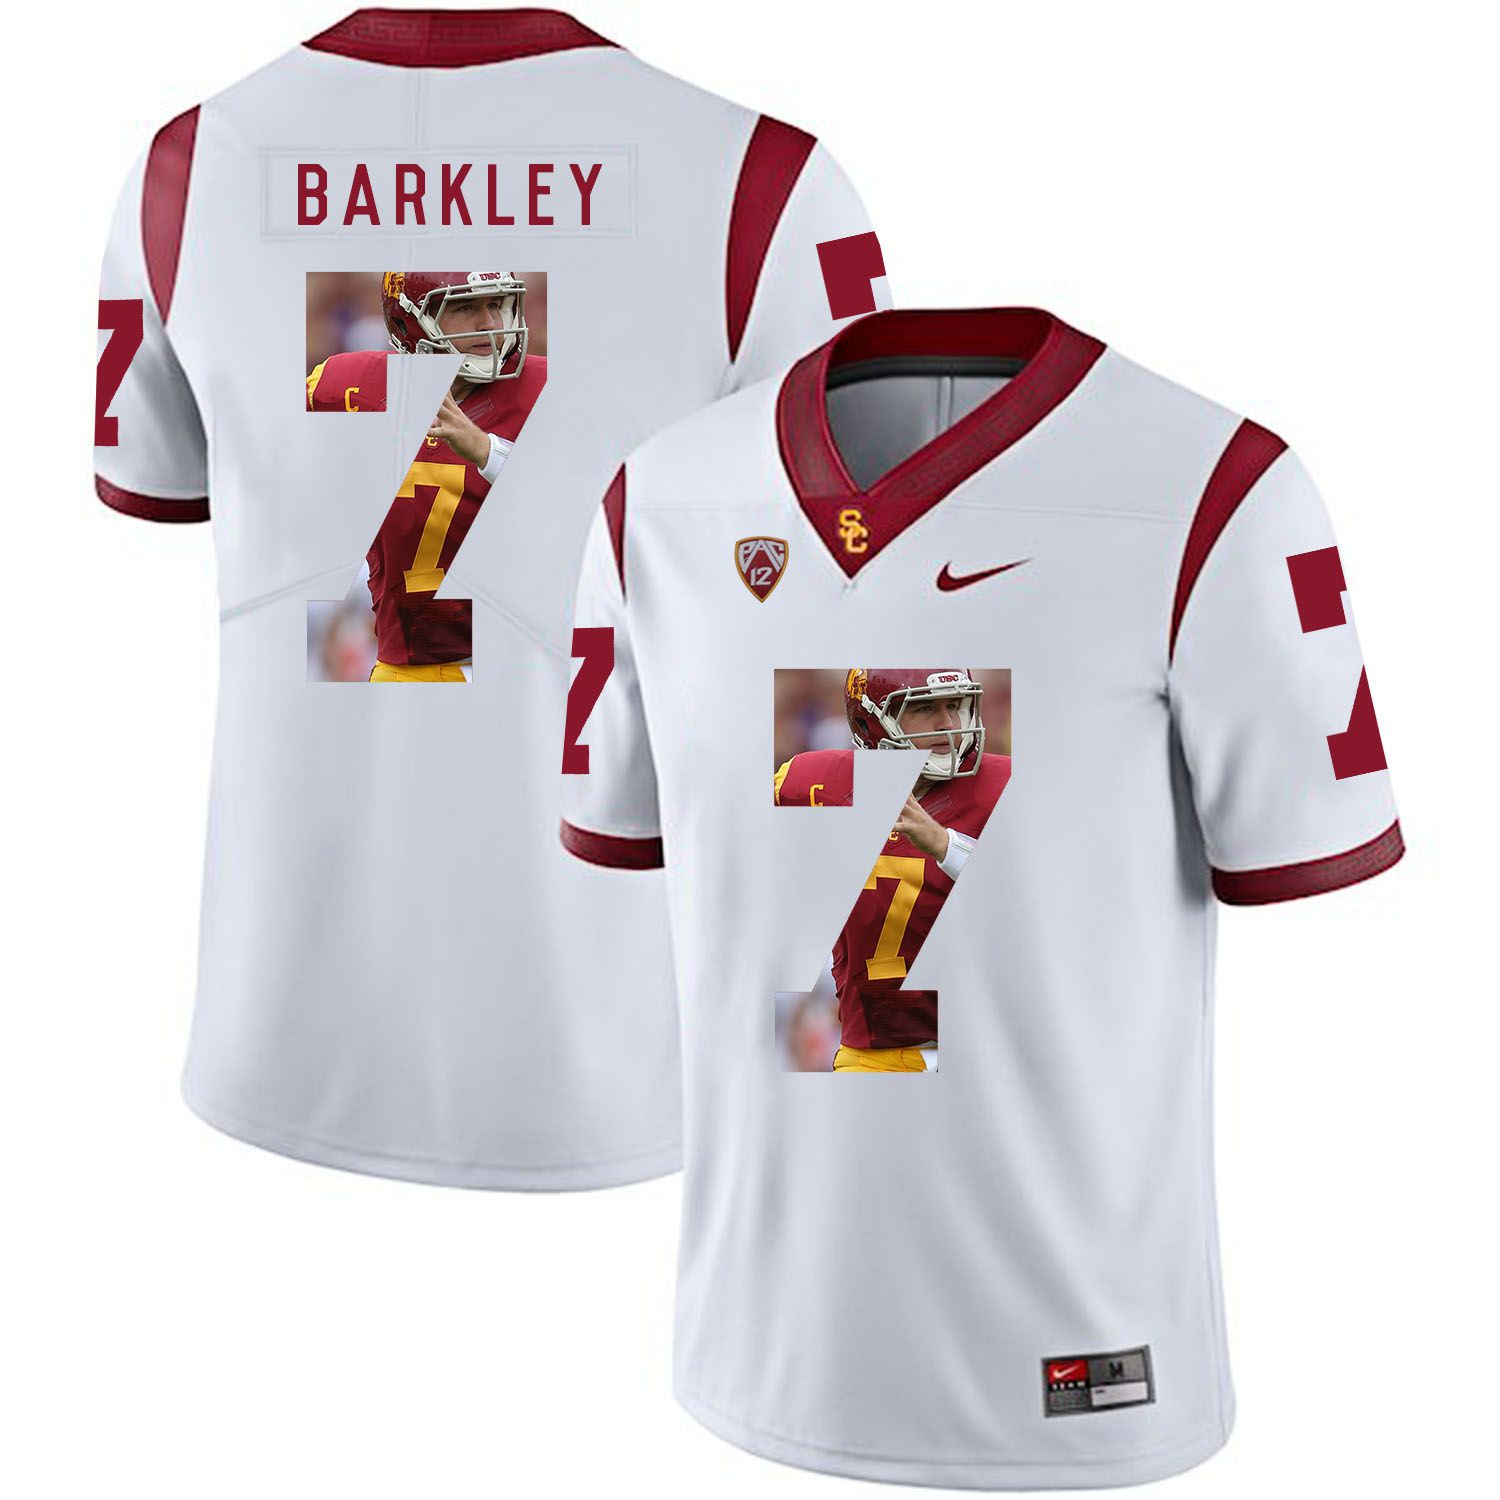 Men USC Trojans 7 Barkley White Fashion Edition Customized NCAA Jerseys